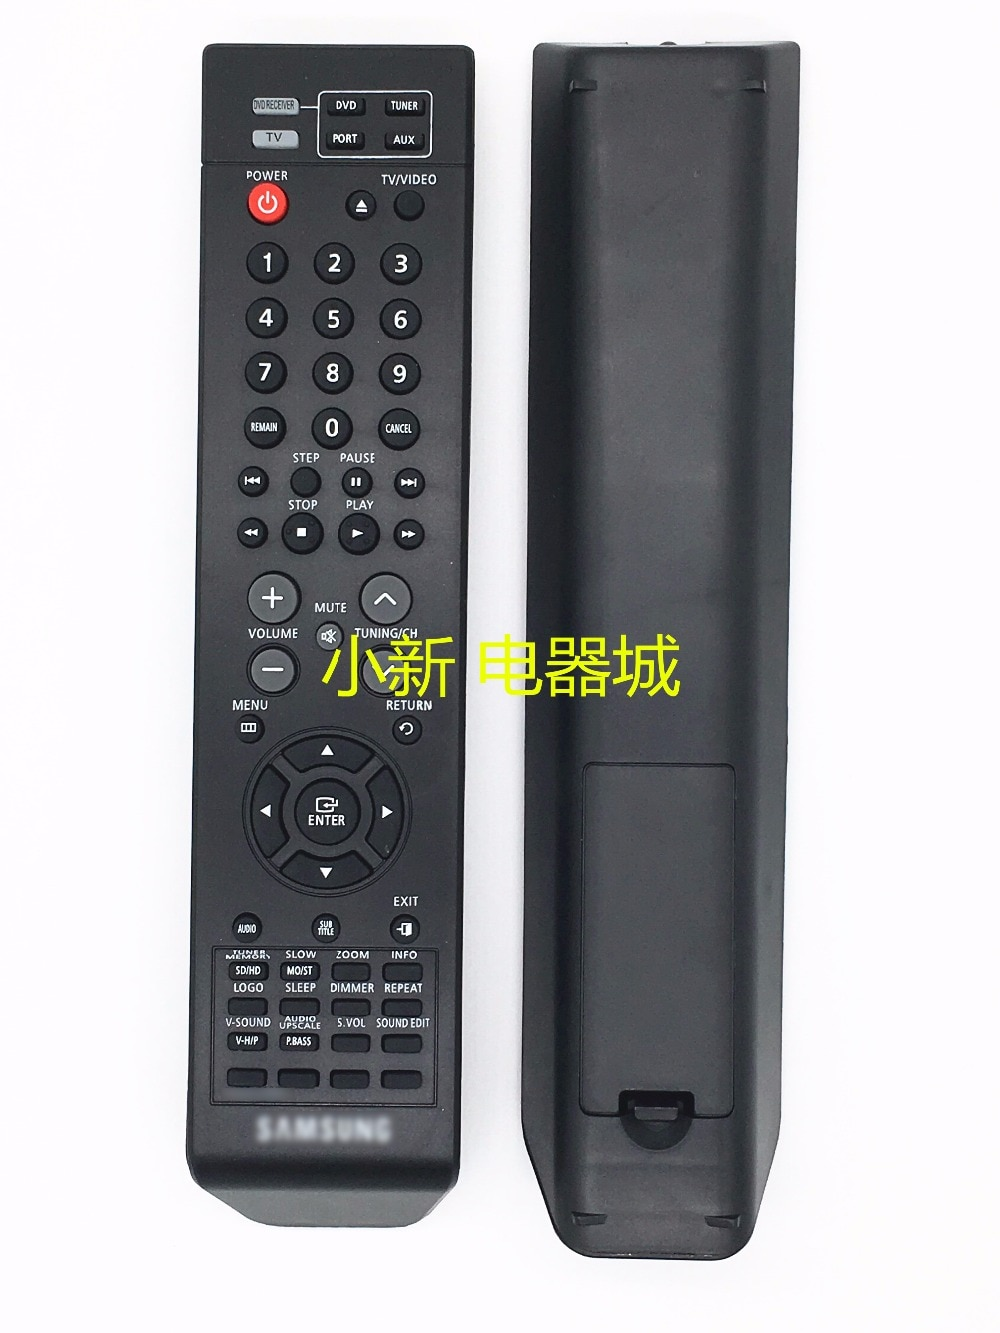 Remote Control For Samsung HT-TX55 HT-TX55T HT-TX55T/XAC HT-X50T AA HT-X50T/XAC HT-X70 HT-X70T/XAZ D